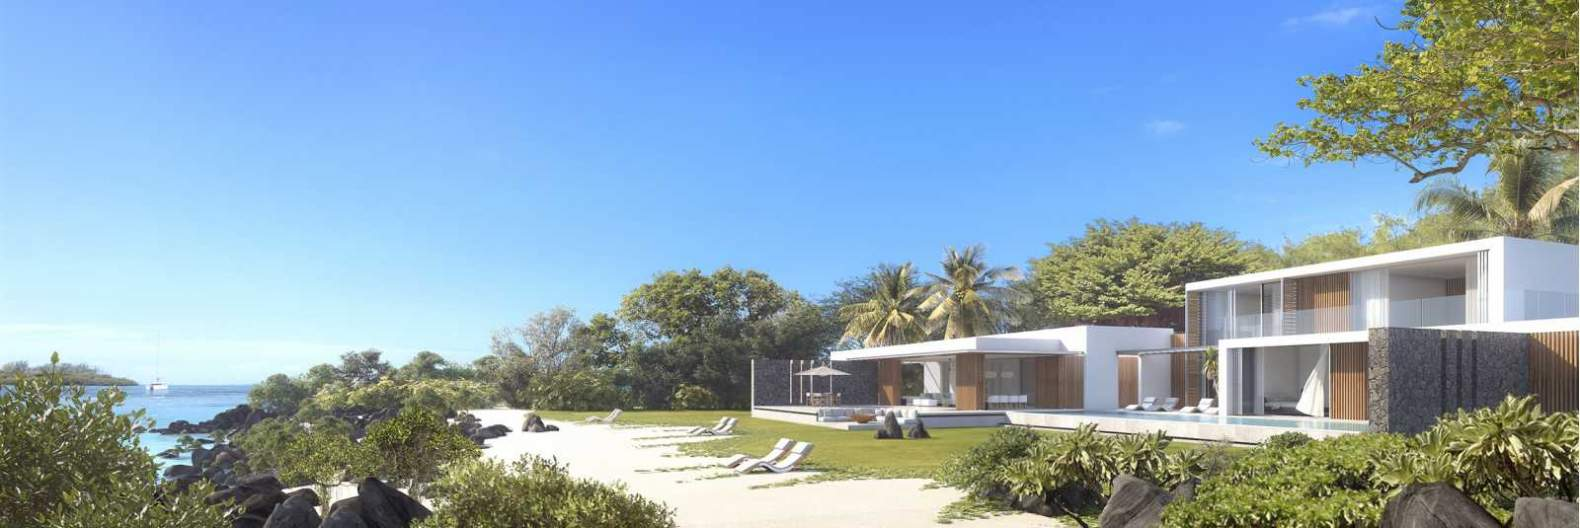 Beau Champ  - Casa  - picture 1